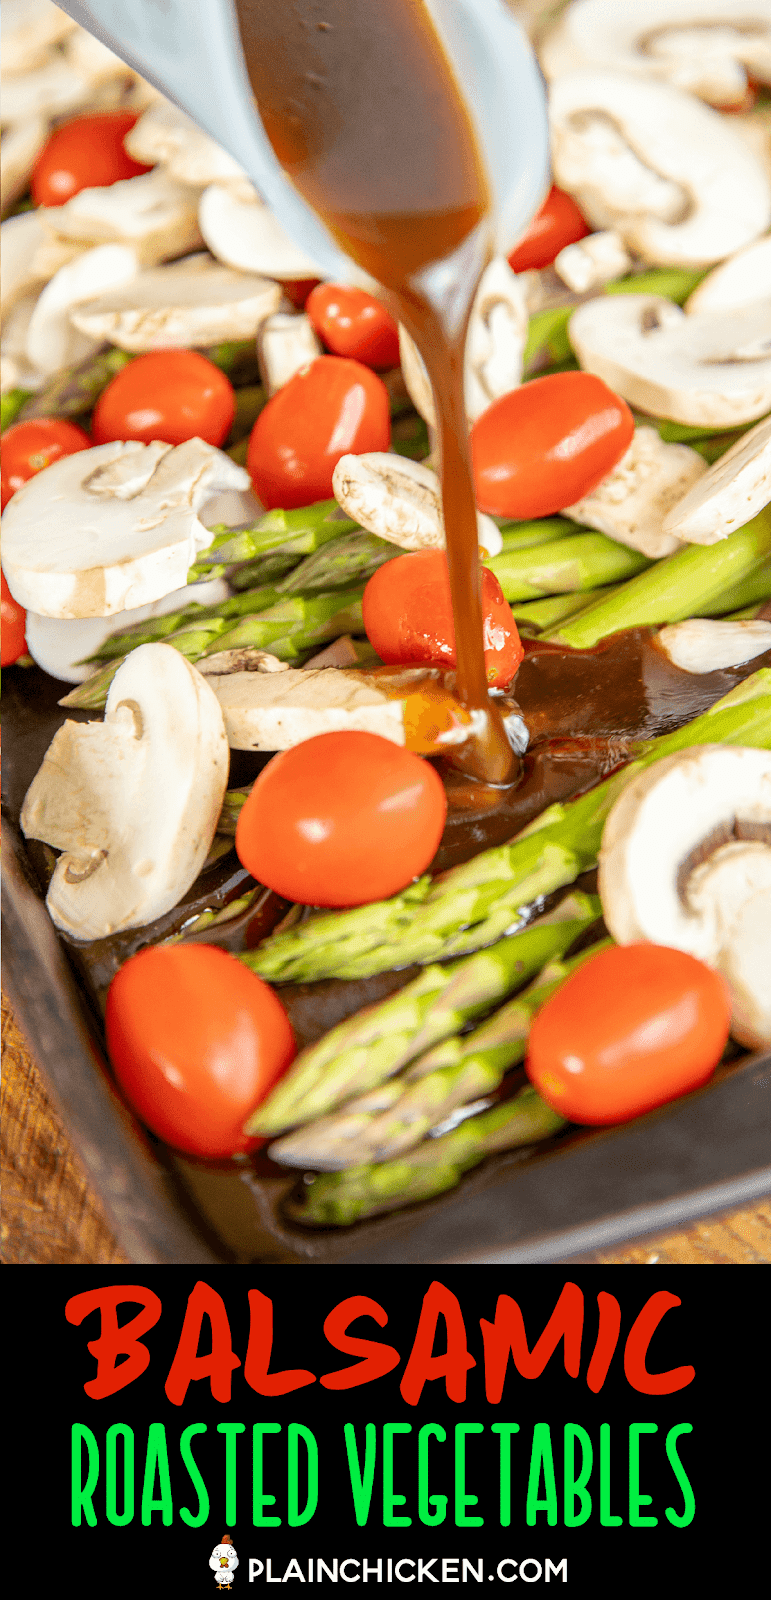 drizzling dressing over vegetables in a baking pan